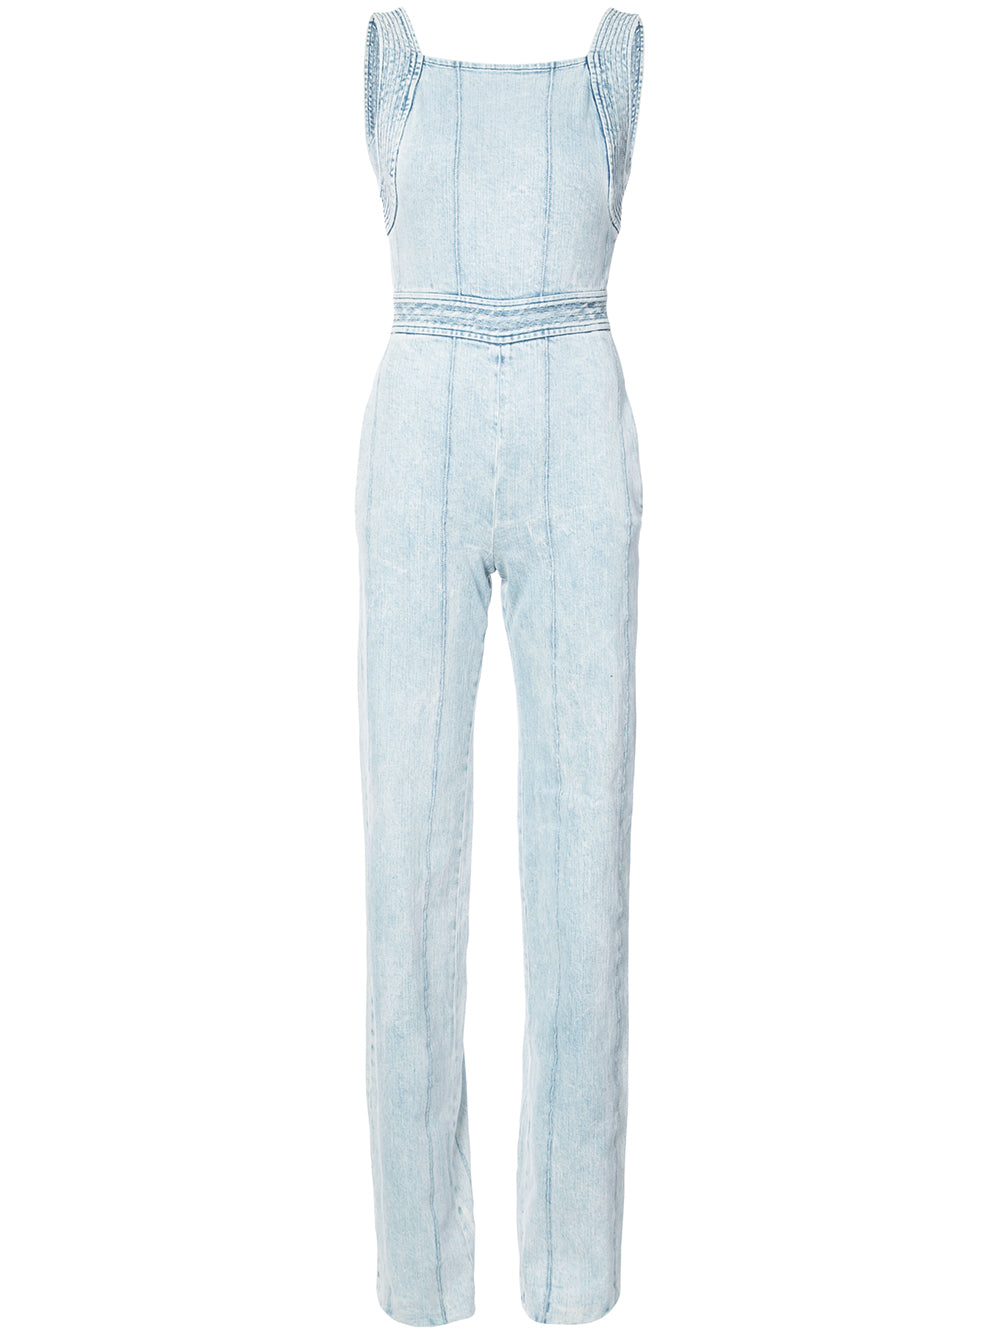 CORDED DENIM FITTED OVERALL JUMPSUIT